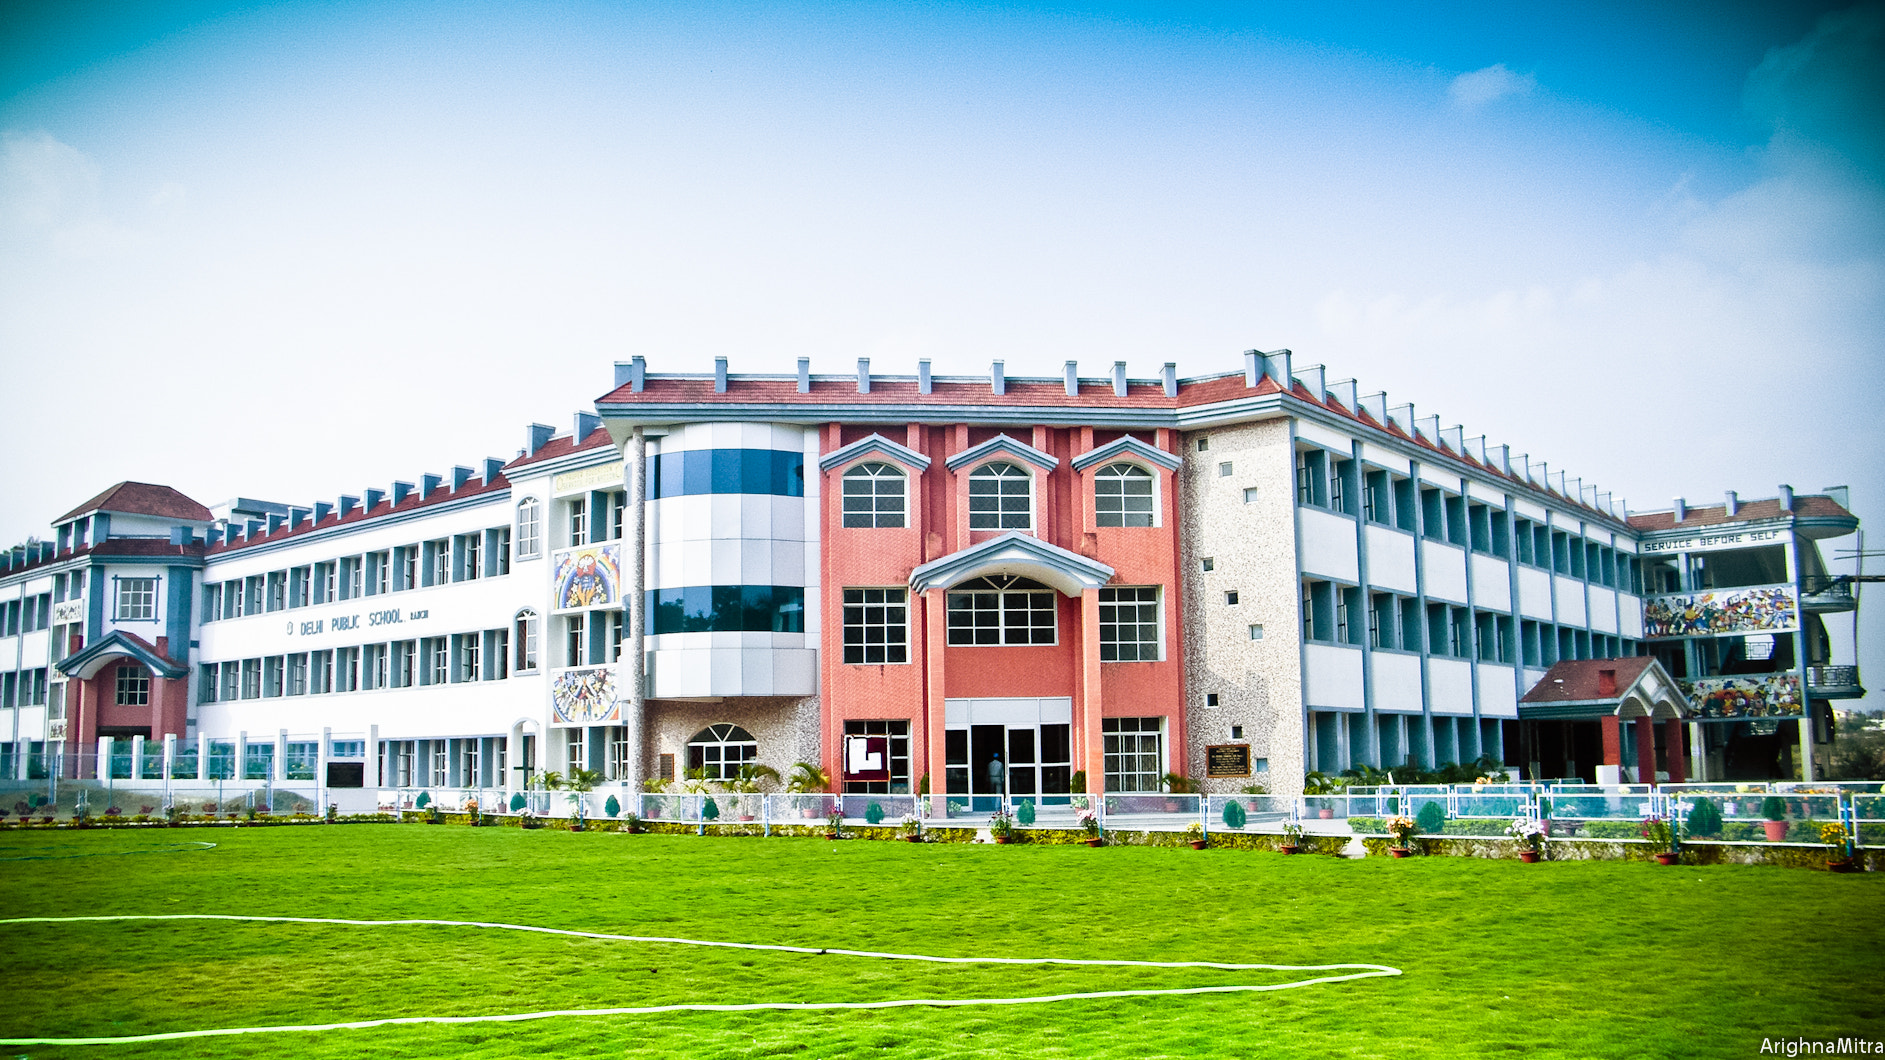 Photograph the school by Arighna Mitra on 500px